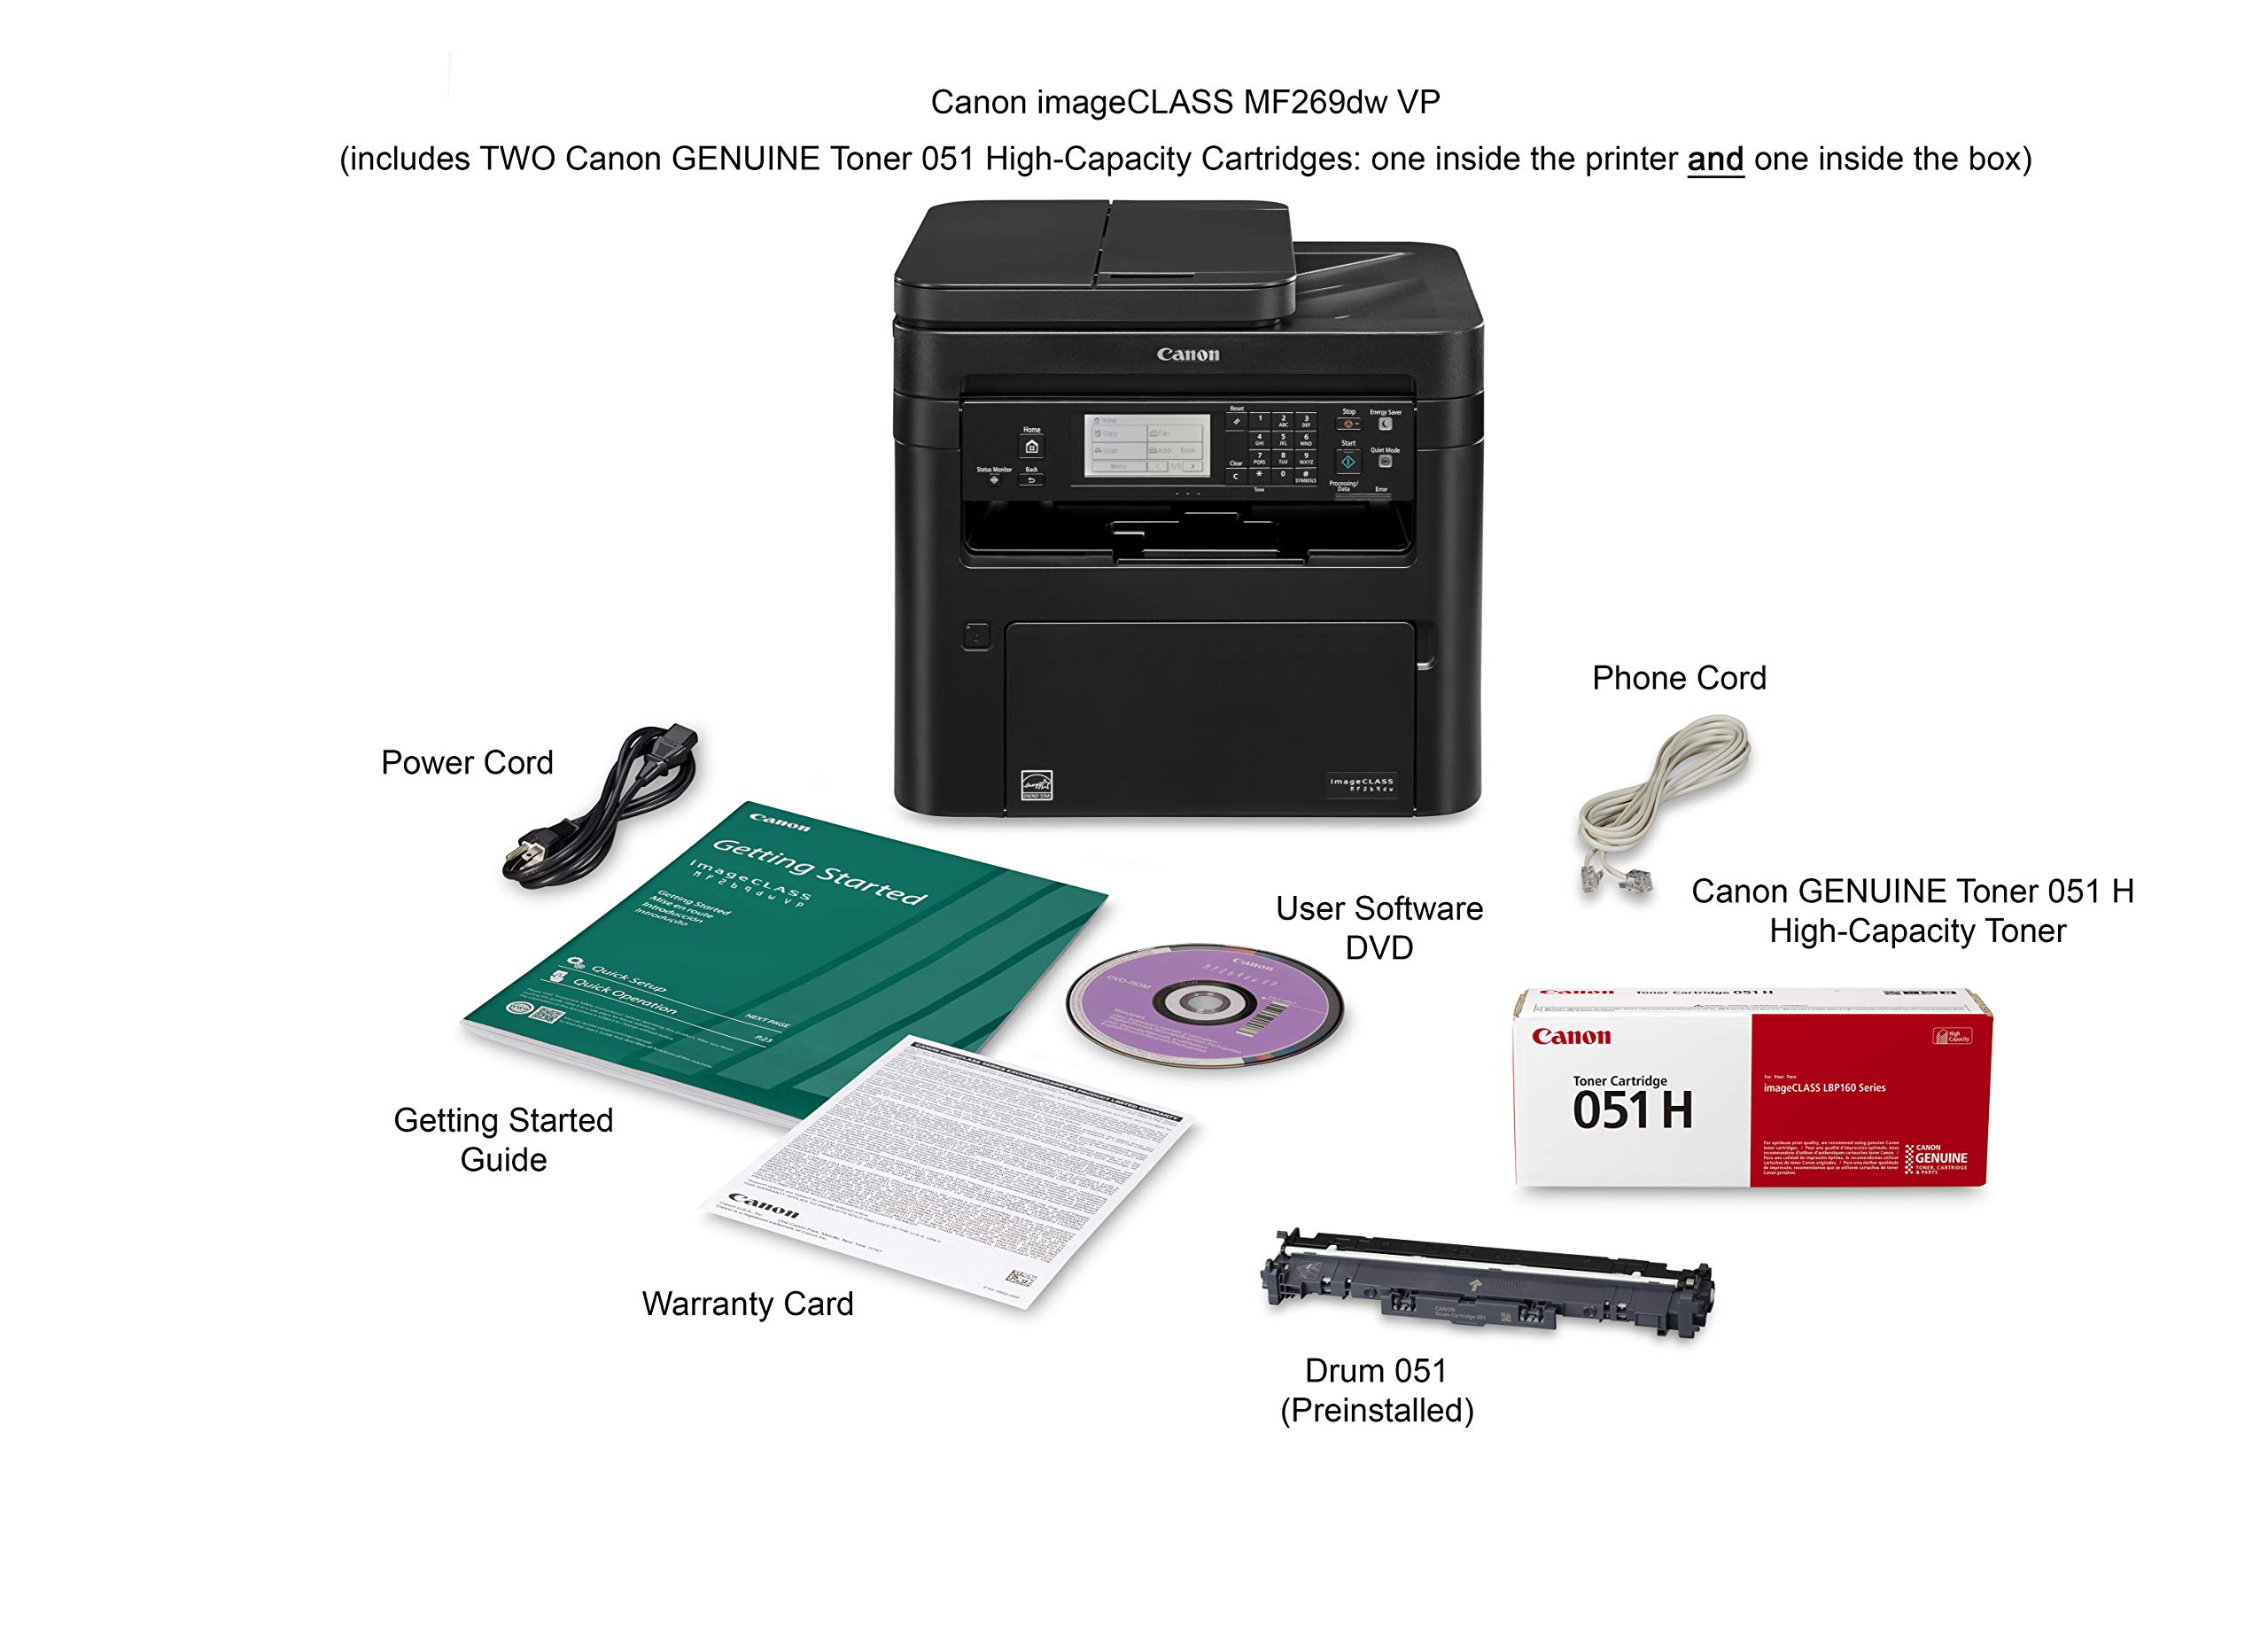 Canon imageCLASS MF269dw VP - All in One, Wireless, Mobile Ready, Duplex Laser Printer (Comes with 2 Year Limited Warranty) by Canon (Image #7)